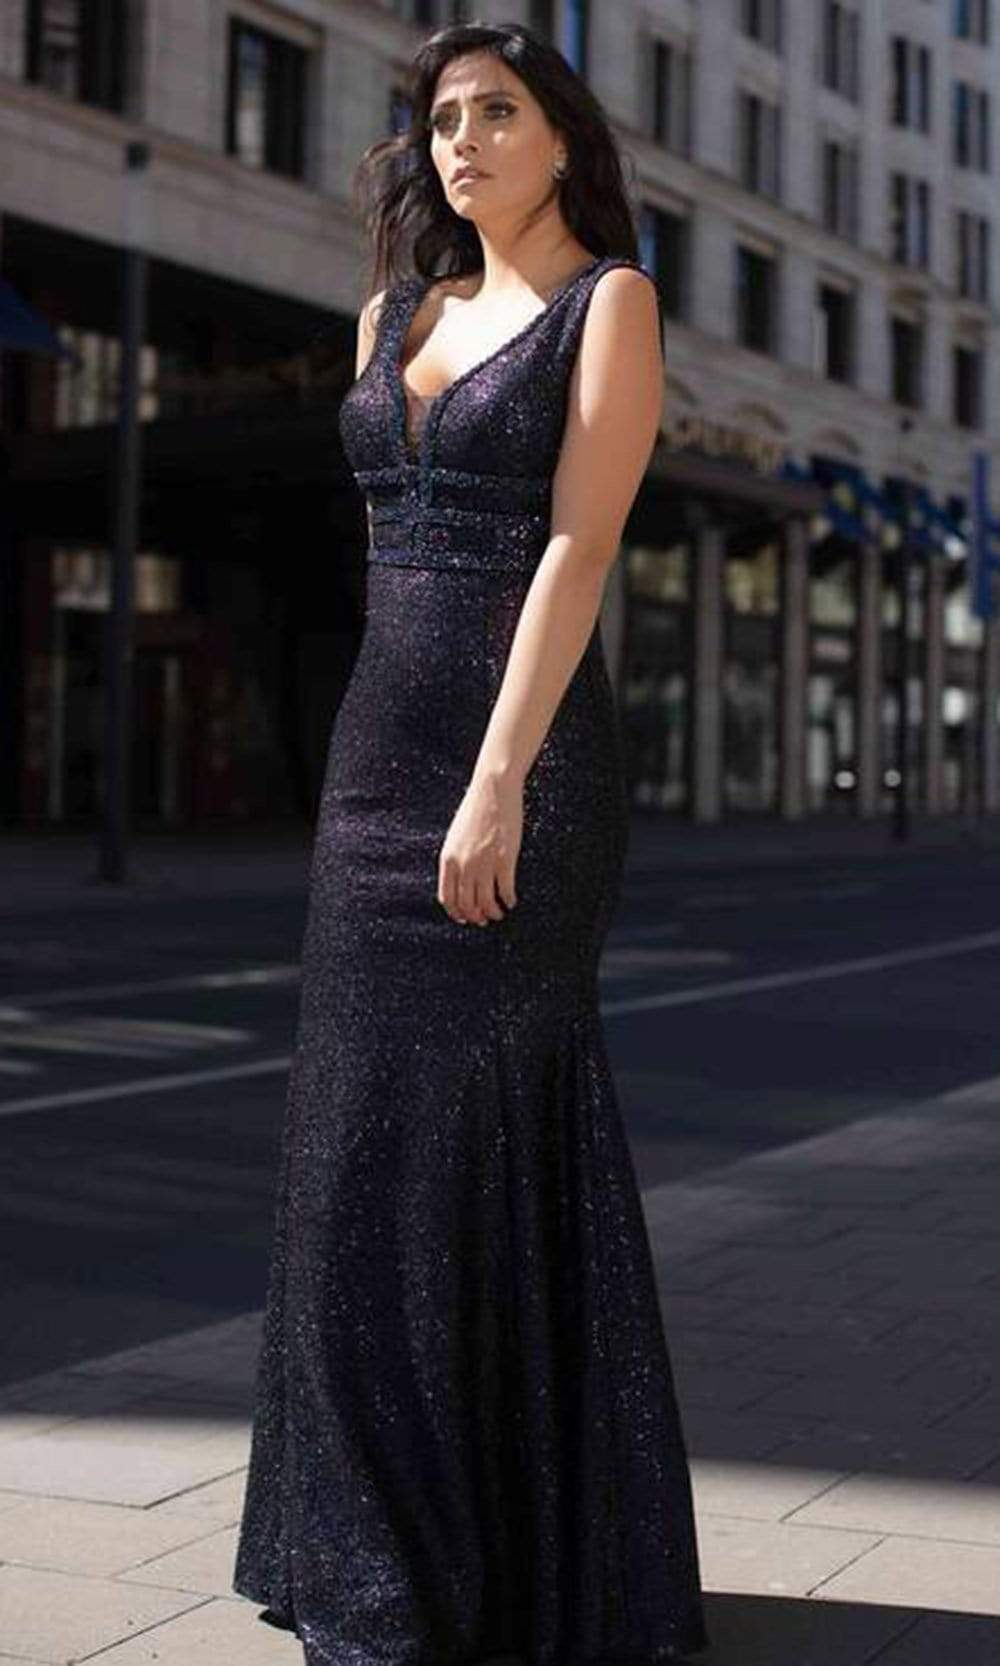 Chic and Holland - AN3007 Plunging Neck Embellished Gown from Chic and Holland